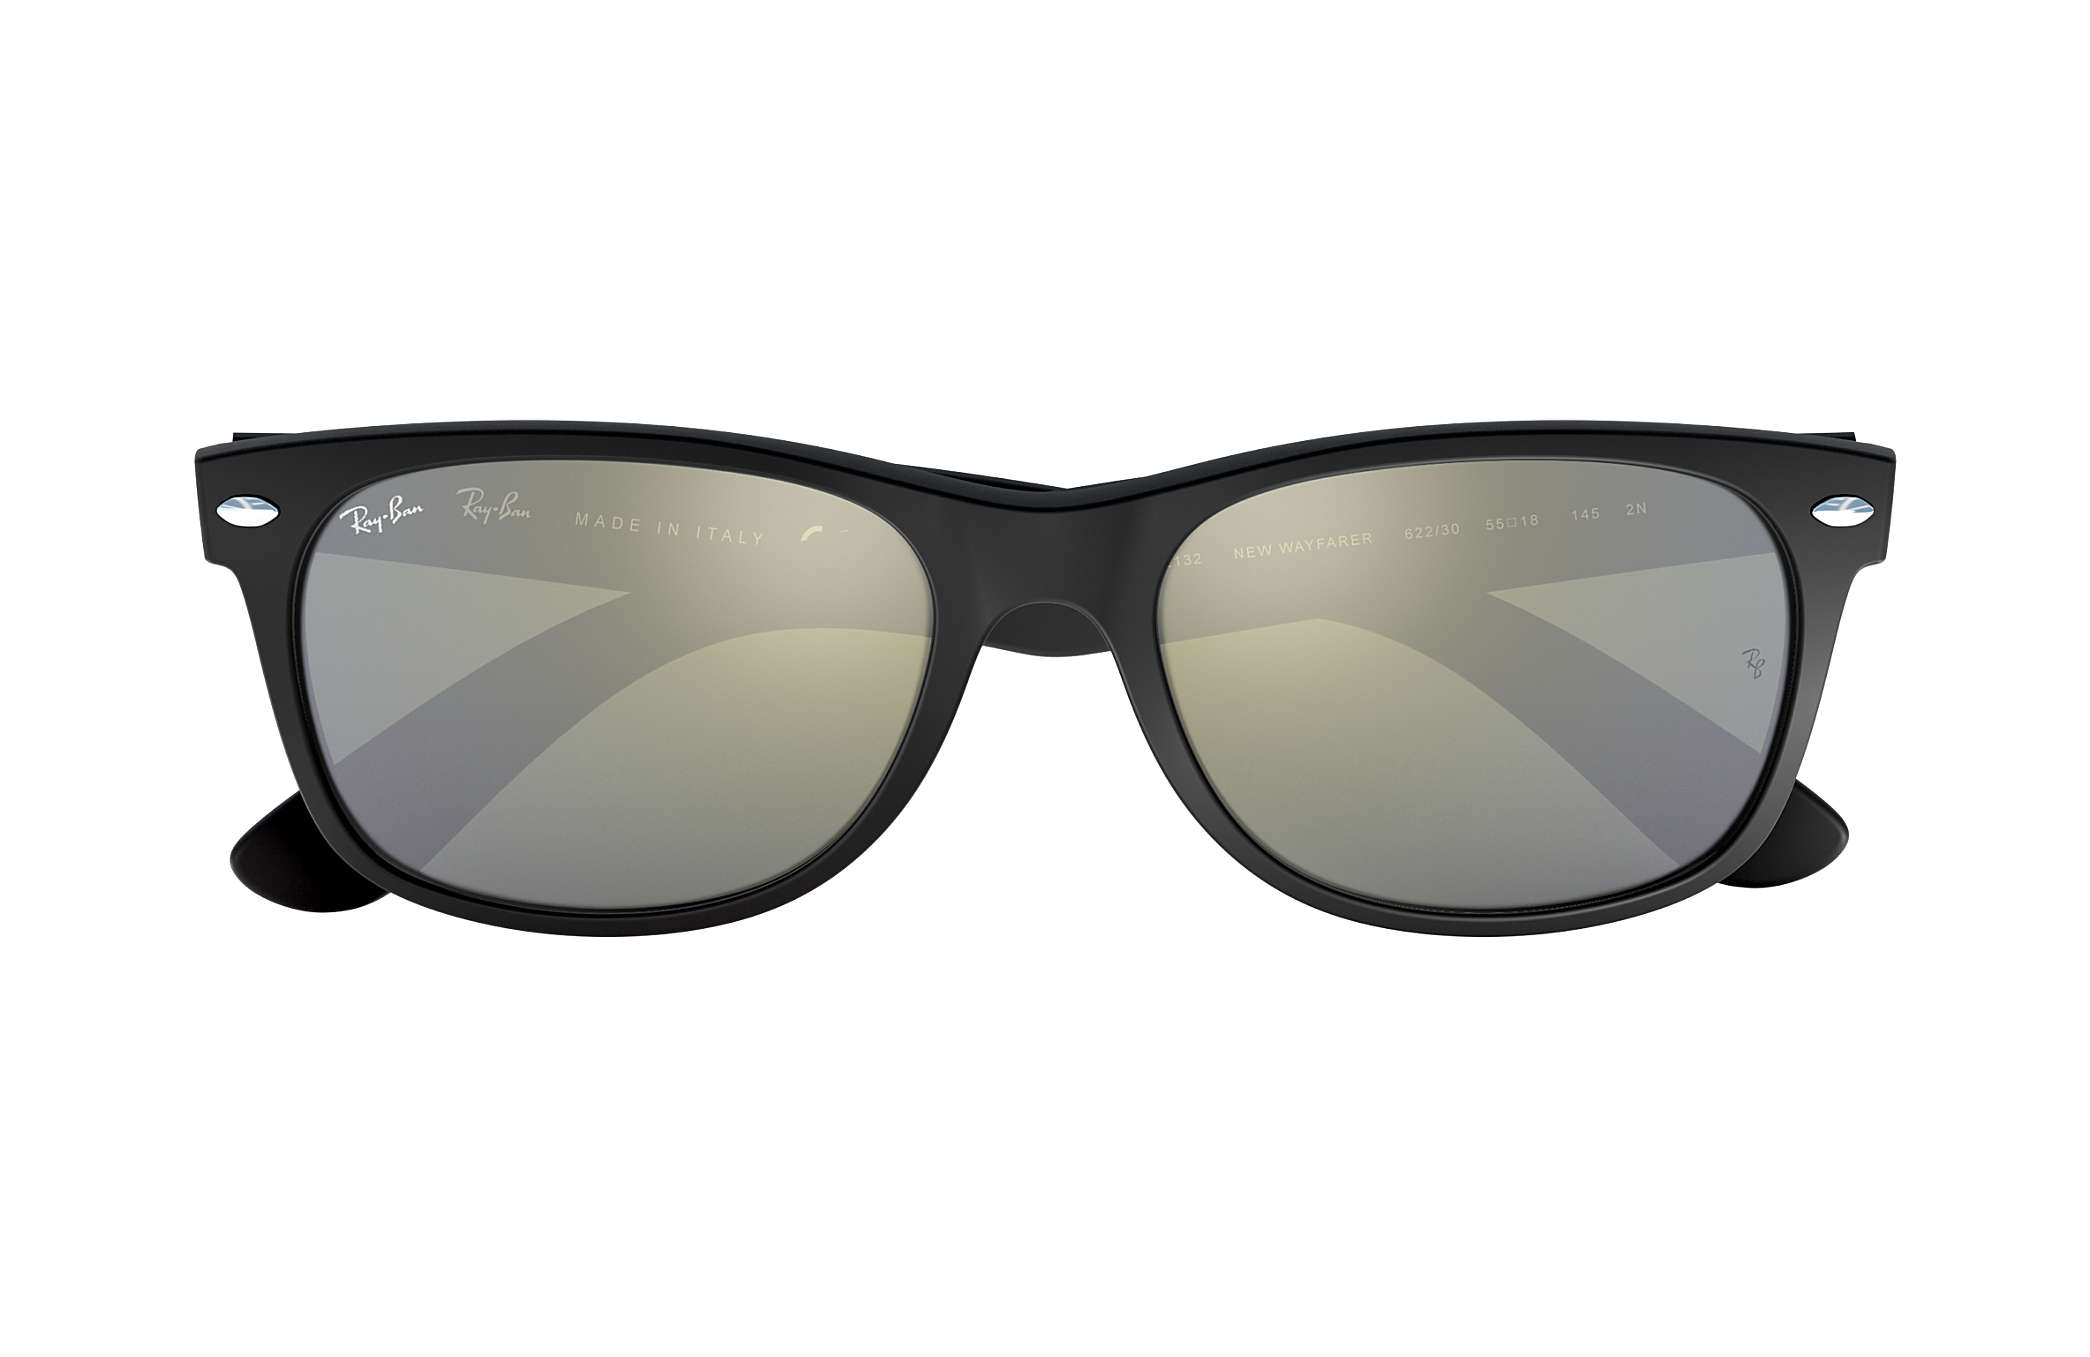 Ray-Ban New Wayfarer Flash RB2132 Preto - Nylon - Lentes Prata ... e21980dd7d